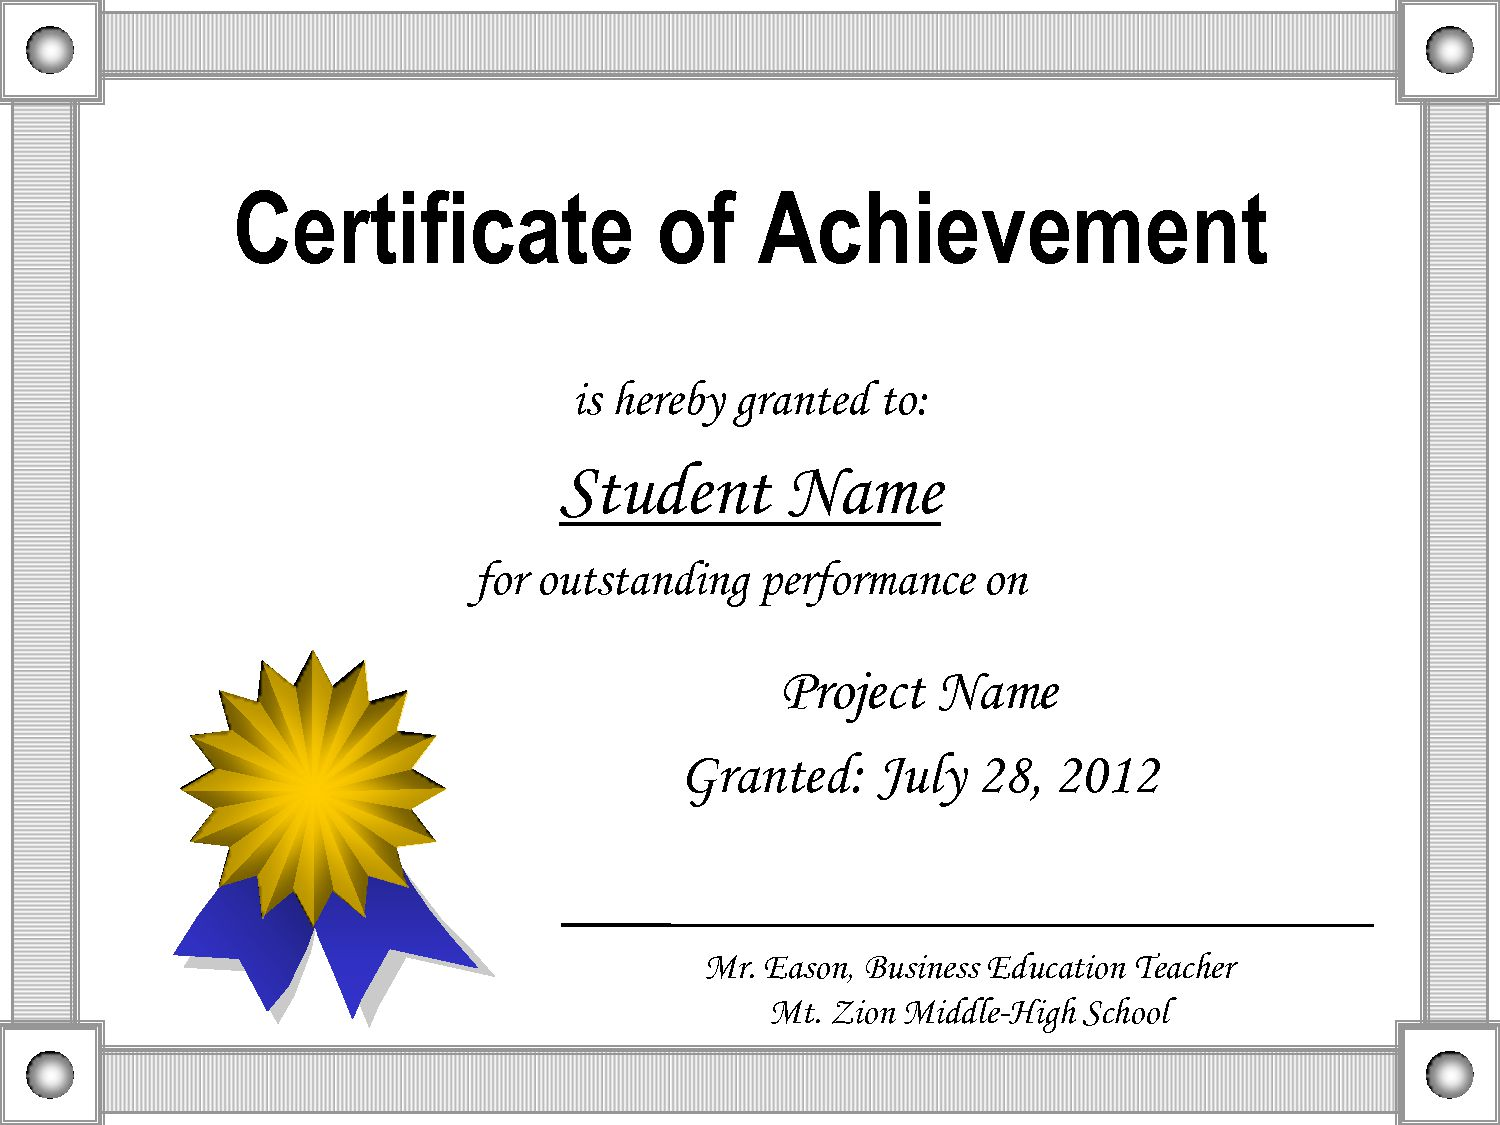 005 Staggering Award Certificate Template Word High Resolution  Doc Sample Wording ScholarshipFull